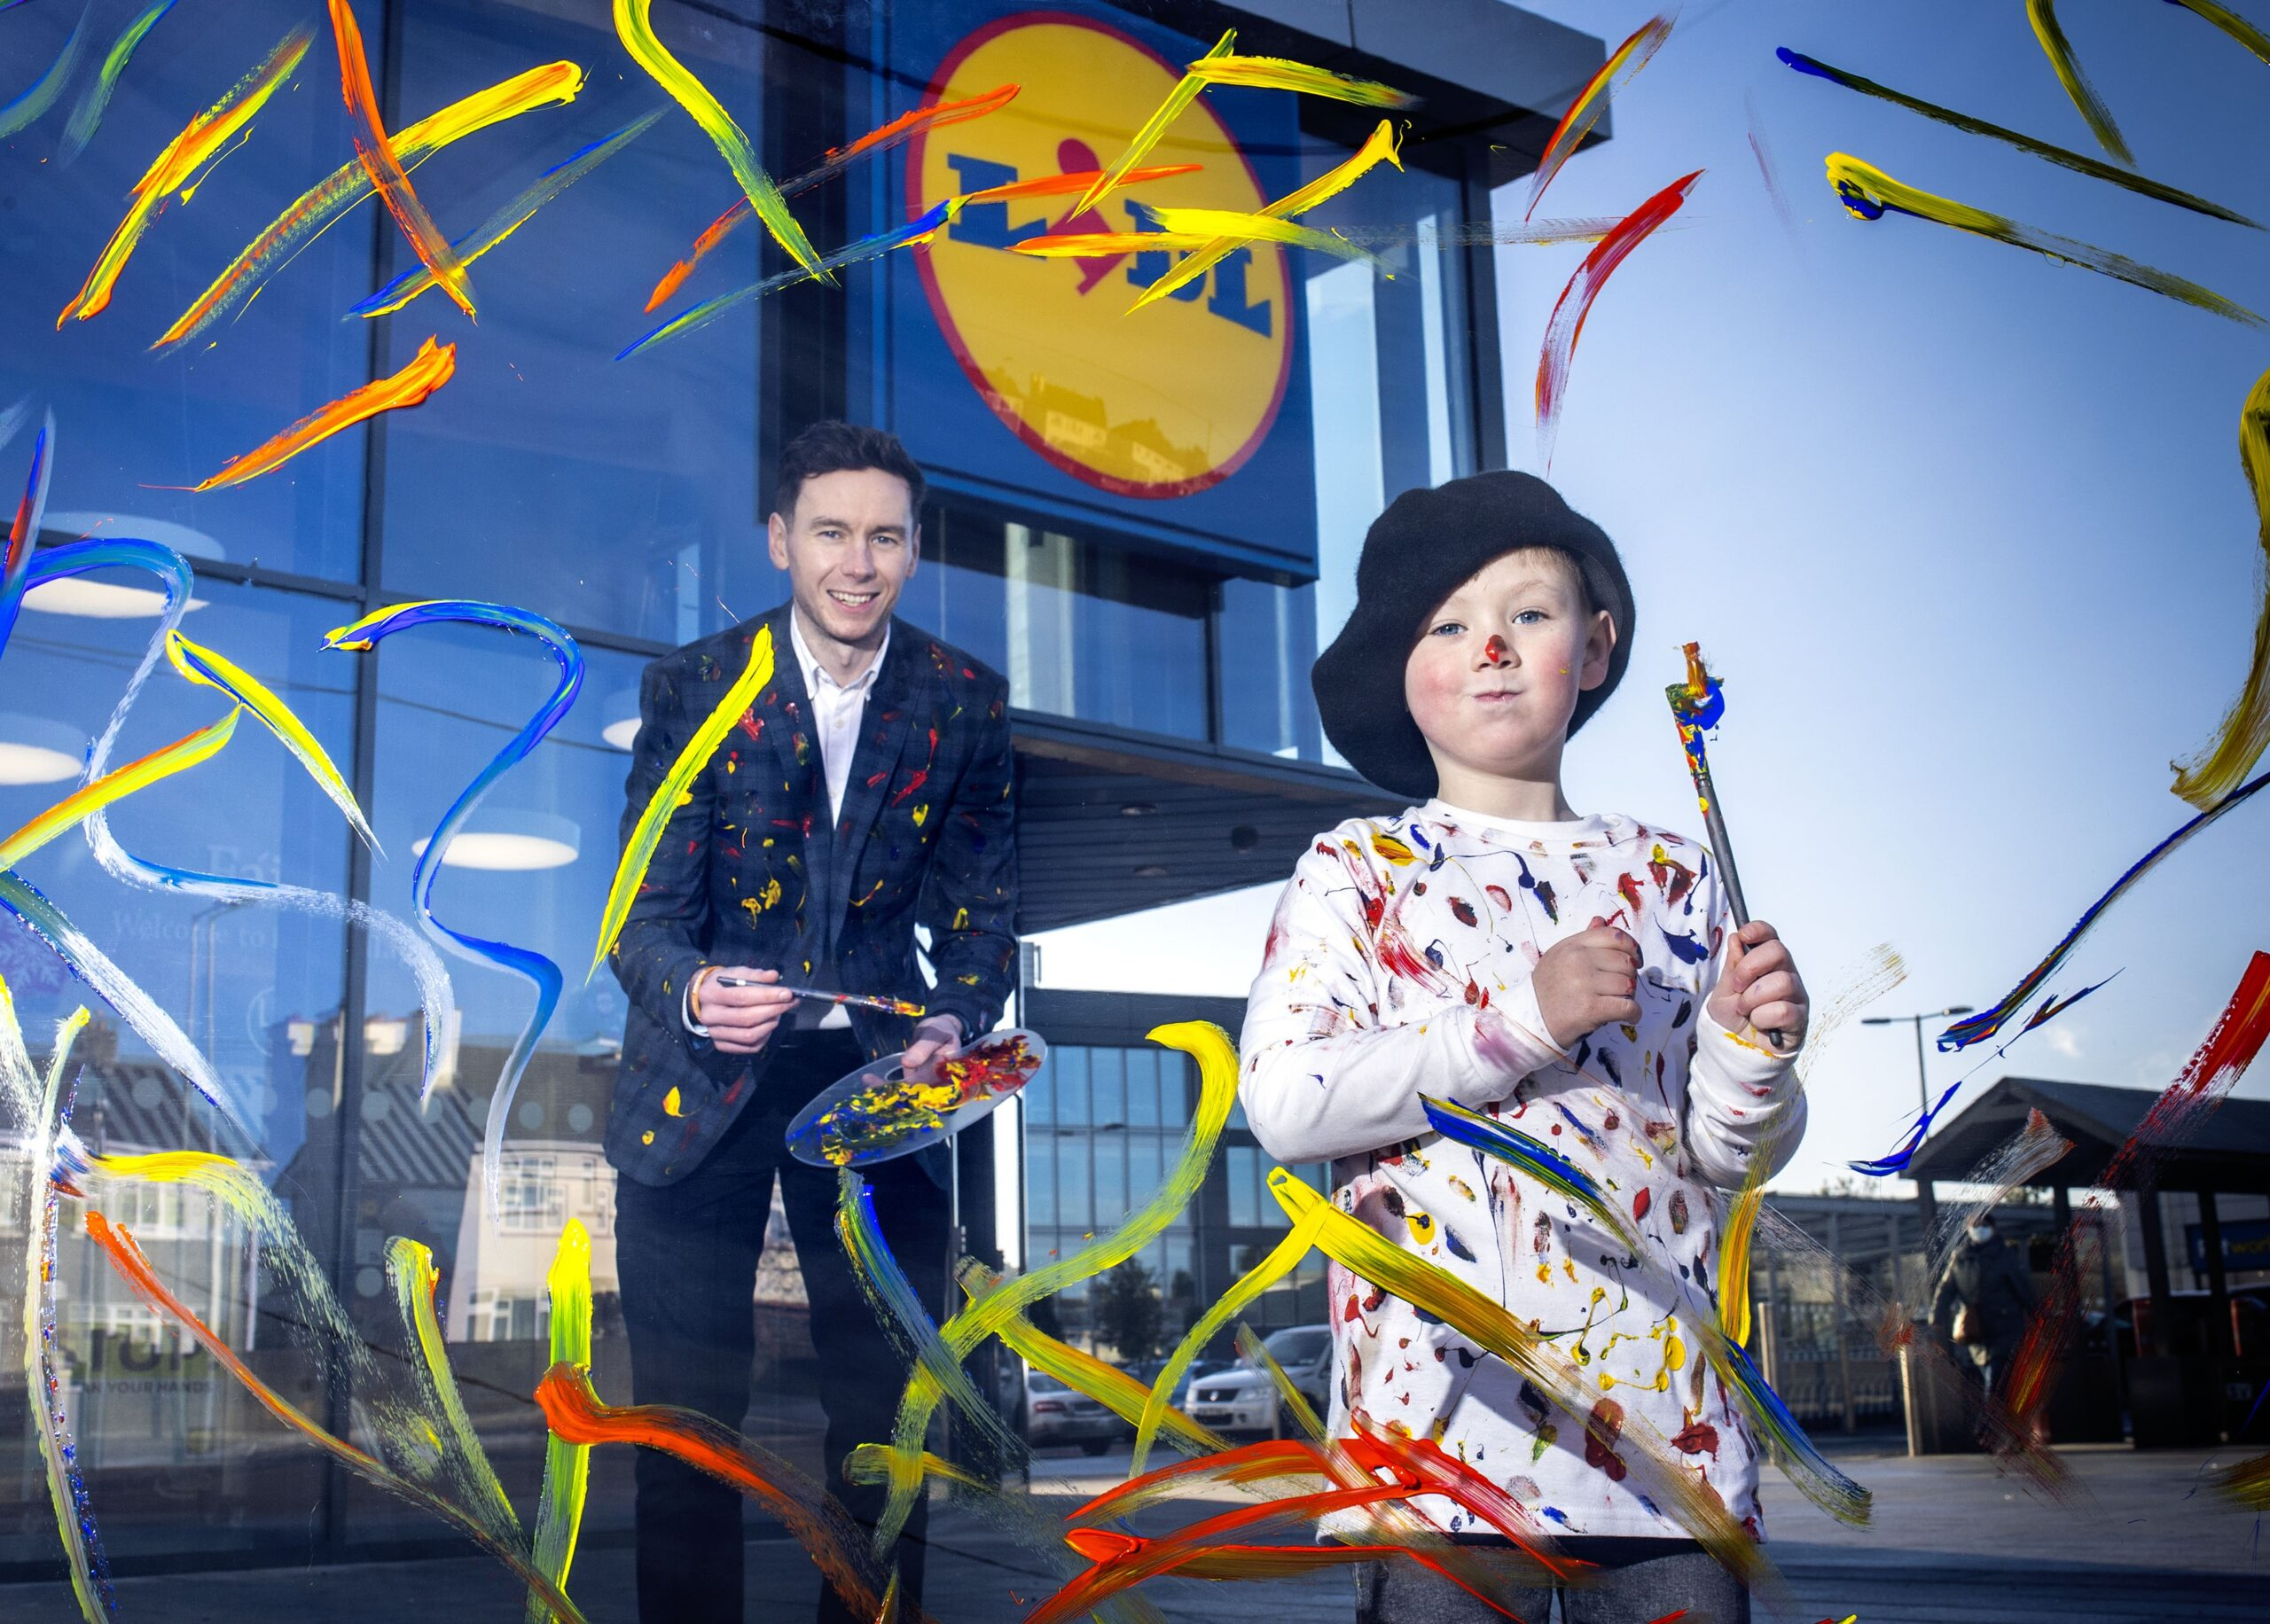 Lidl Northern Ireland on the Hunt for Kids with Bags of Style - Lidl Newry - NEWRY BUSINESS NEWS